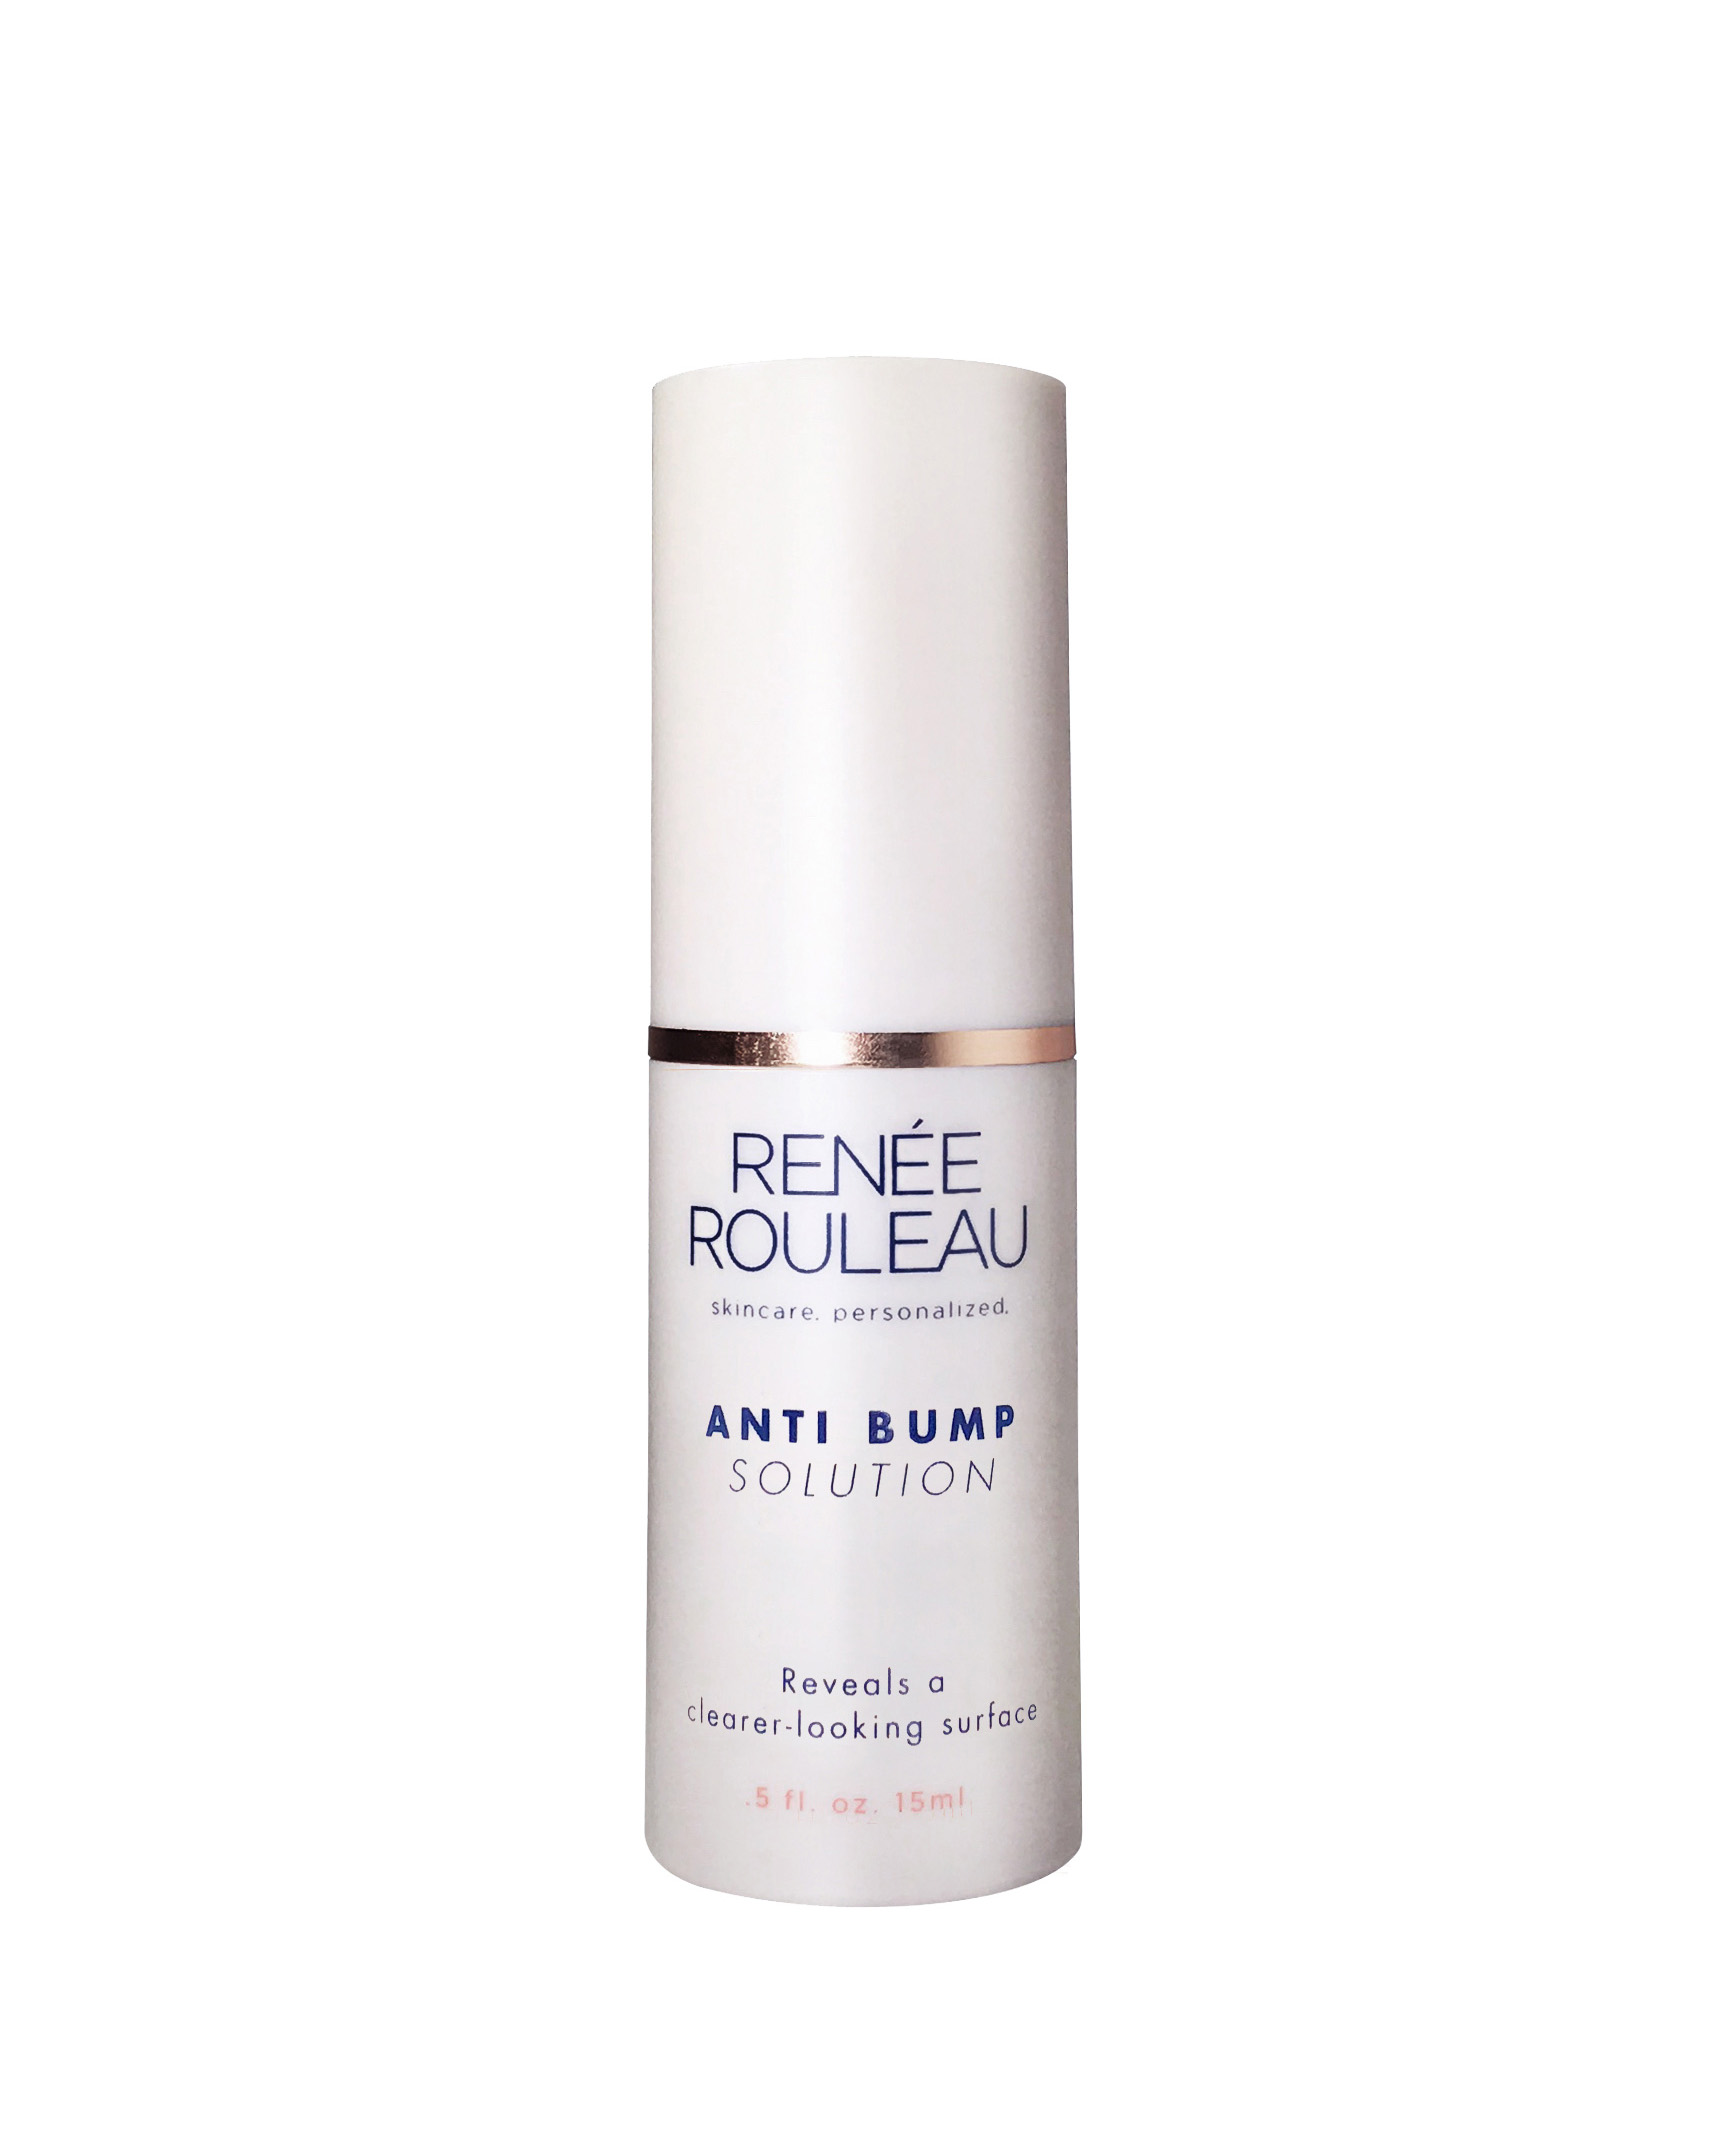 Renee Rouleau Anti Bump Solution